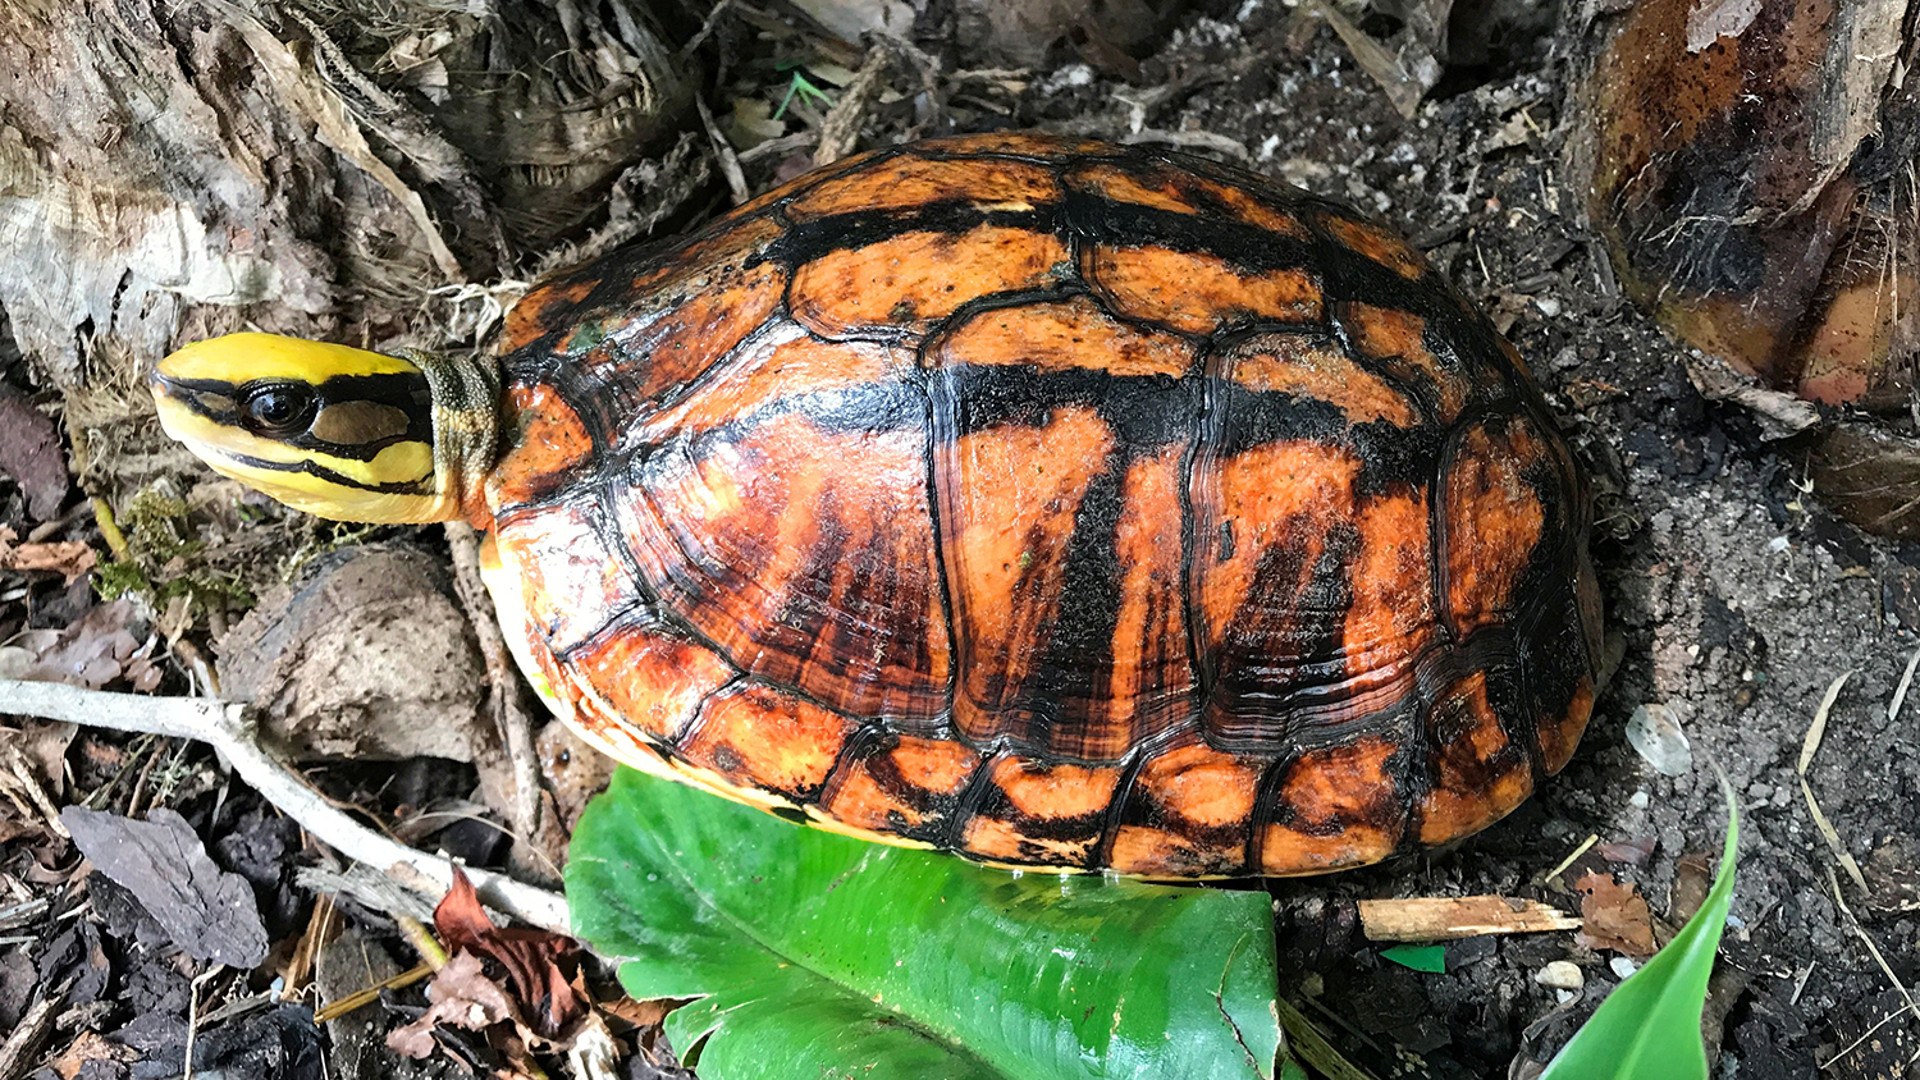 Three-striped box turtle